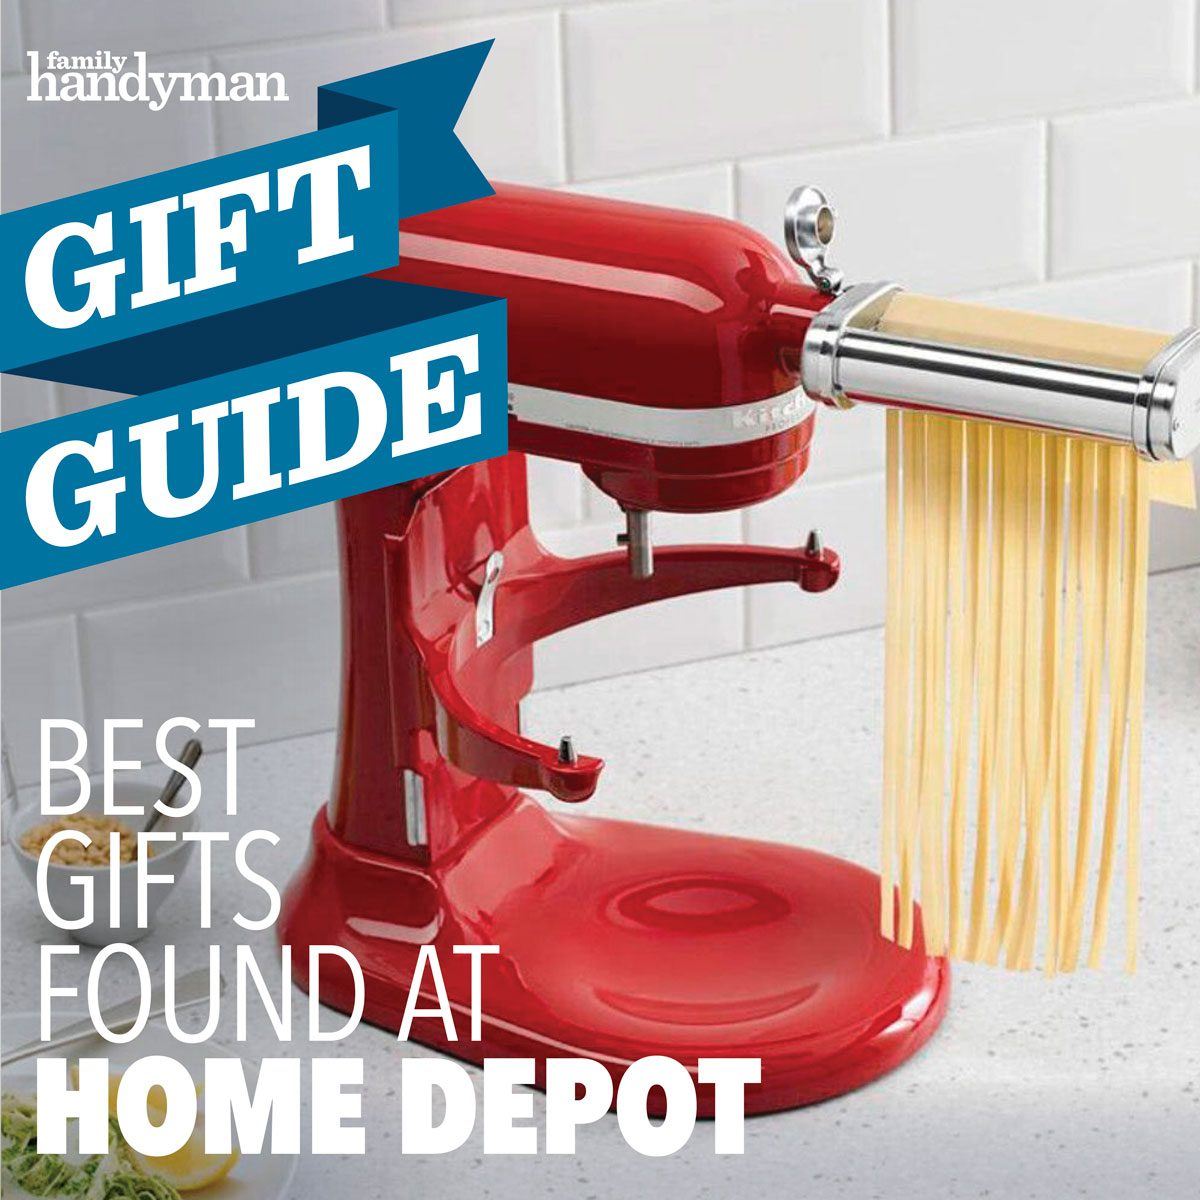 14 best gifts found at home depot for